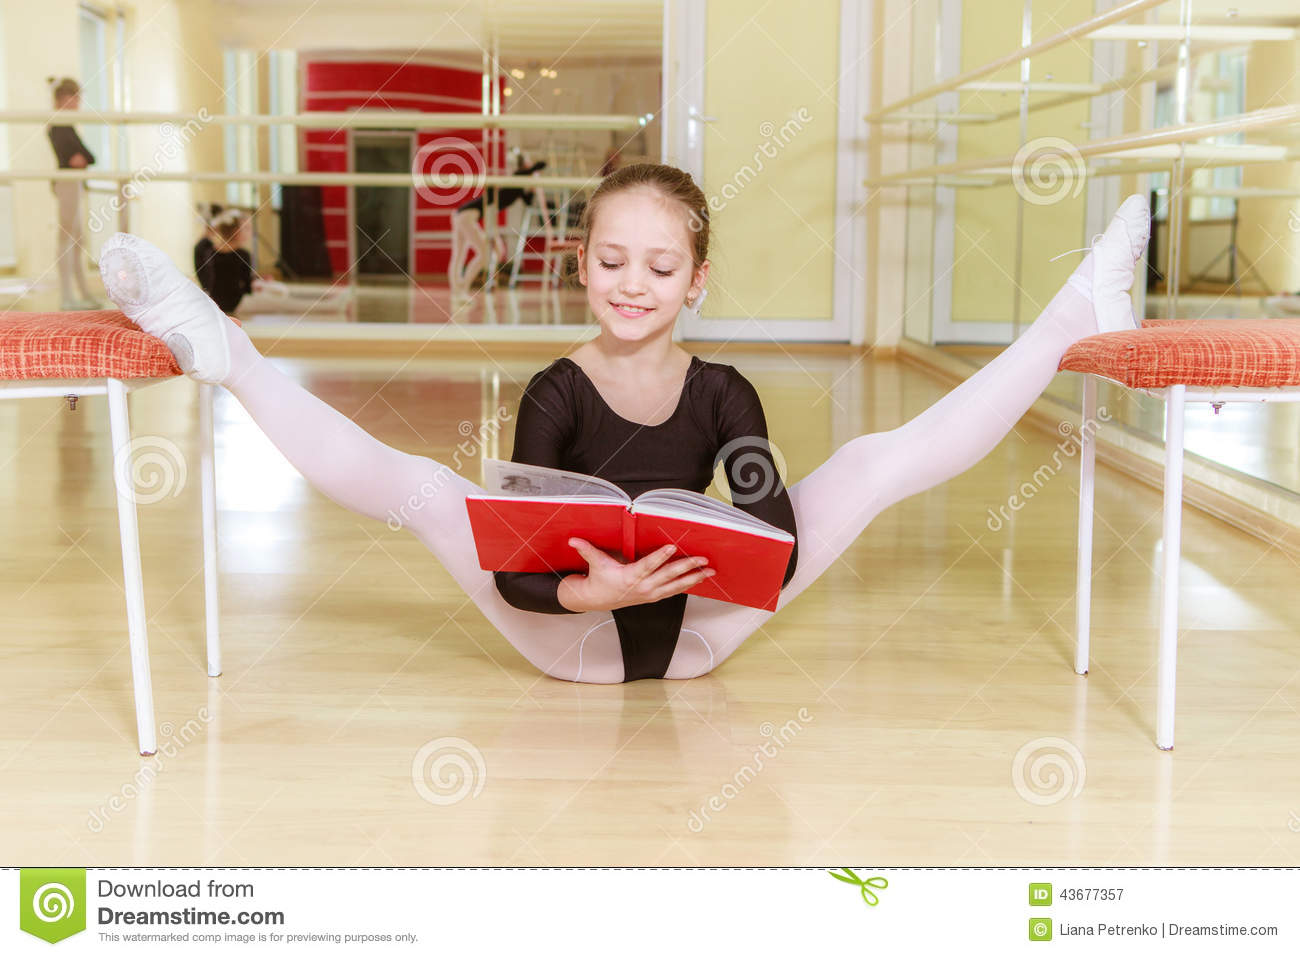 on chair dance covers events dancer a with dancing school stock photo image